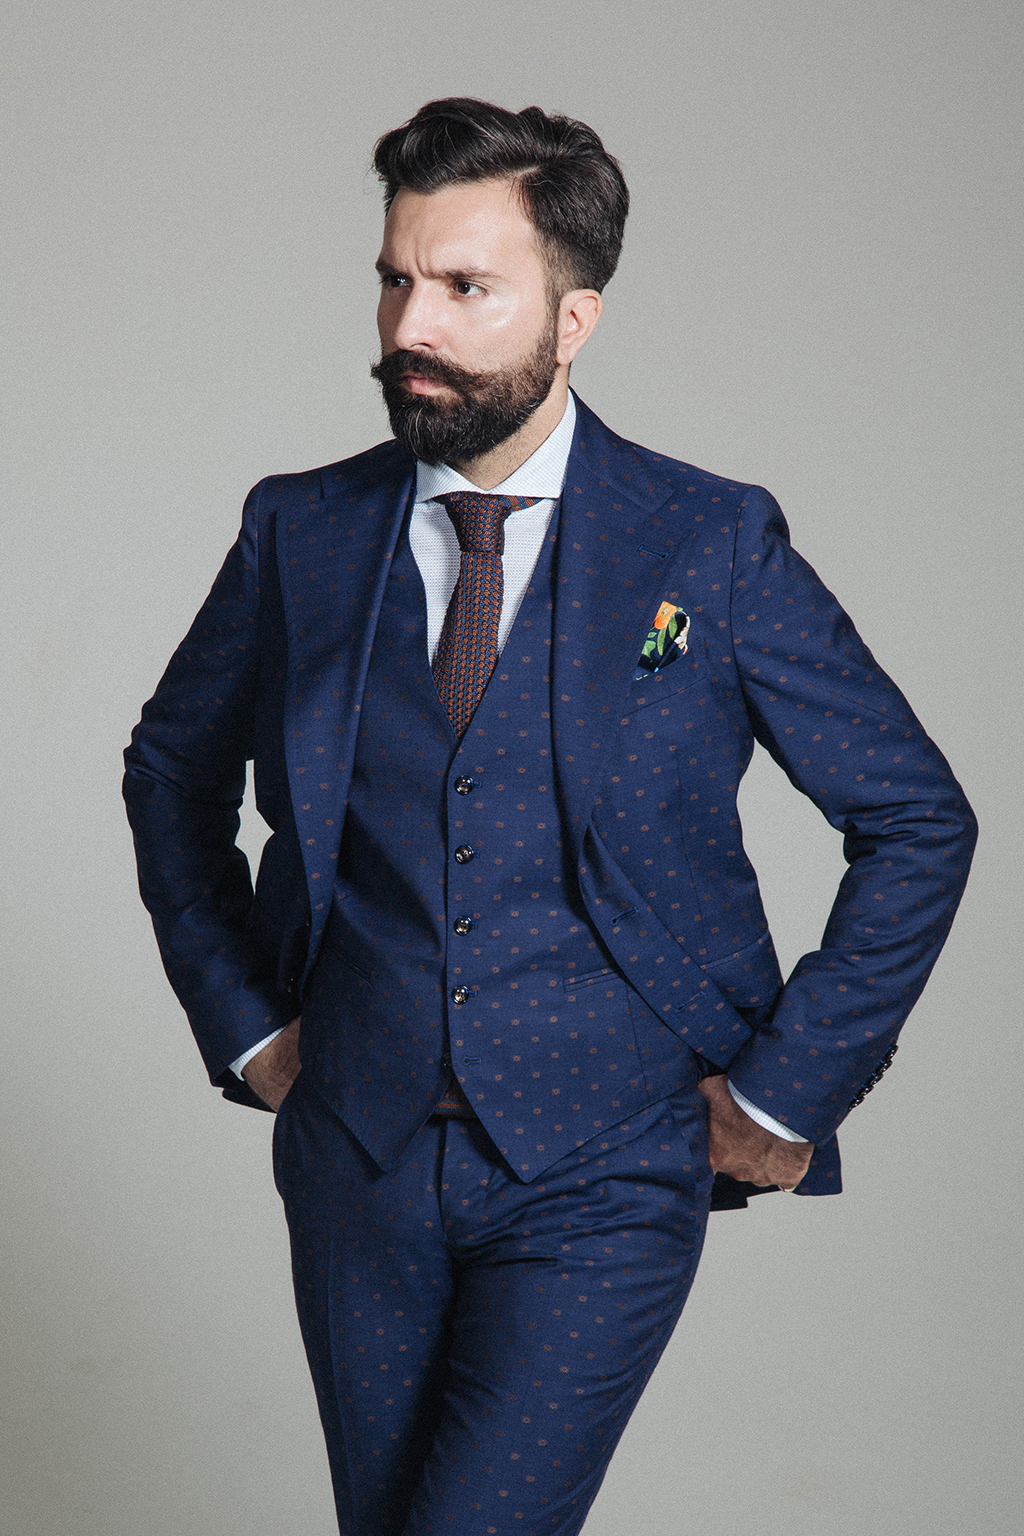 tailor_patterned_suit_blue-10